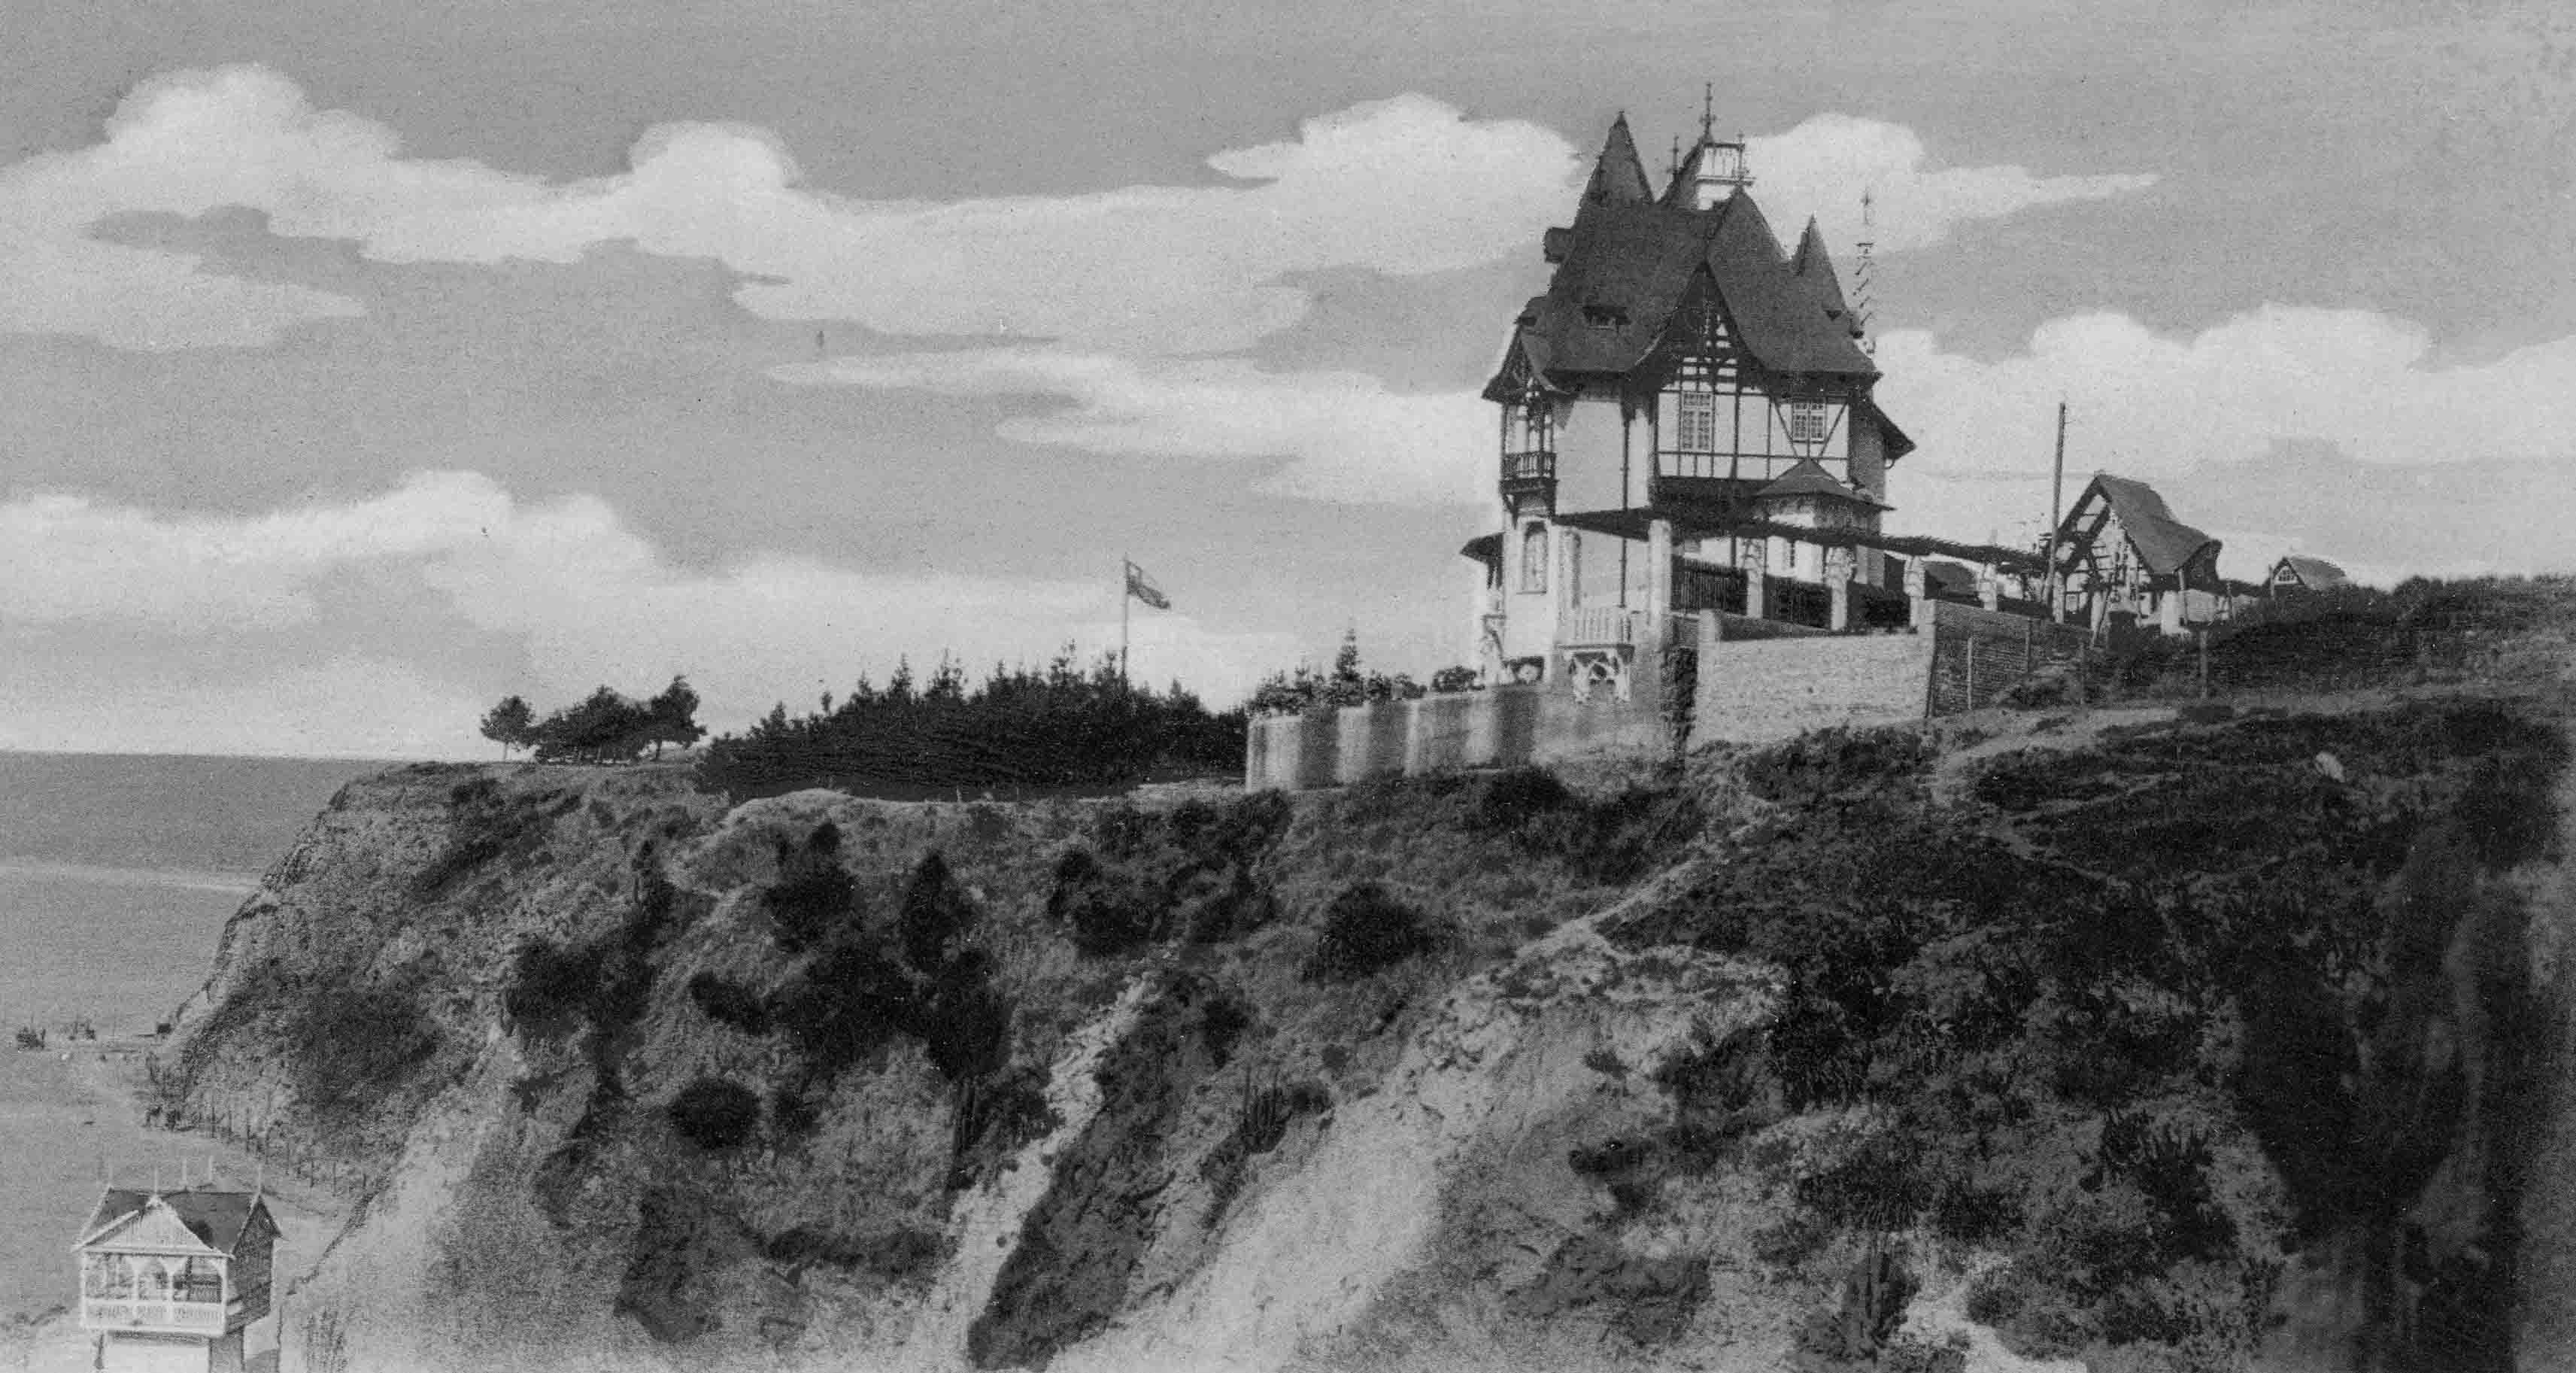 Enterreno - Fotos históricas de chile - fotos antiguas de Chile - Castillo de Luis Gregorio Donoso Vergara ca. 1900